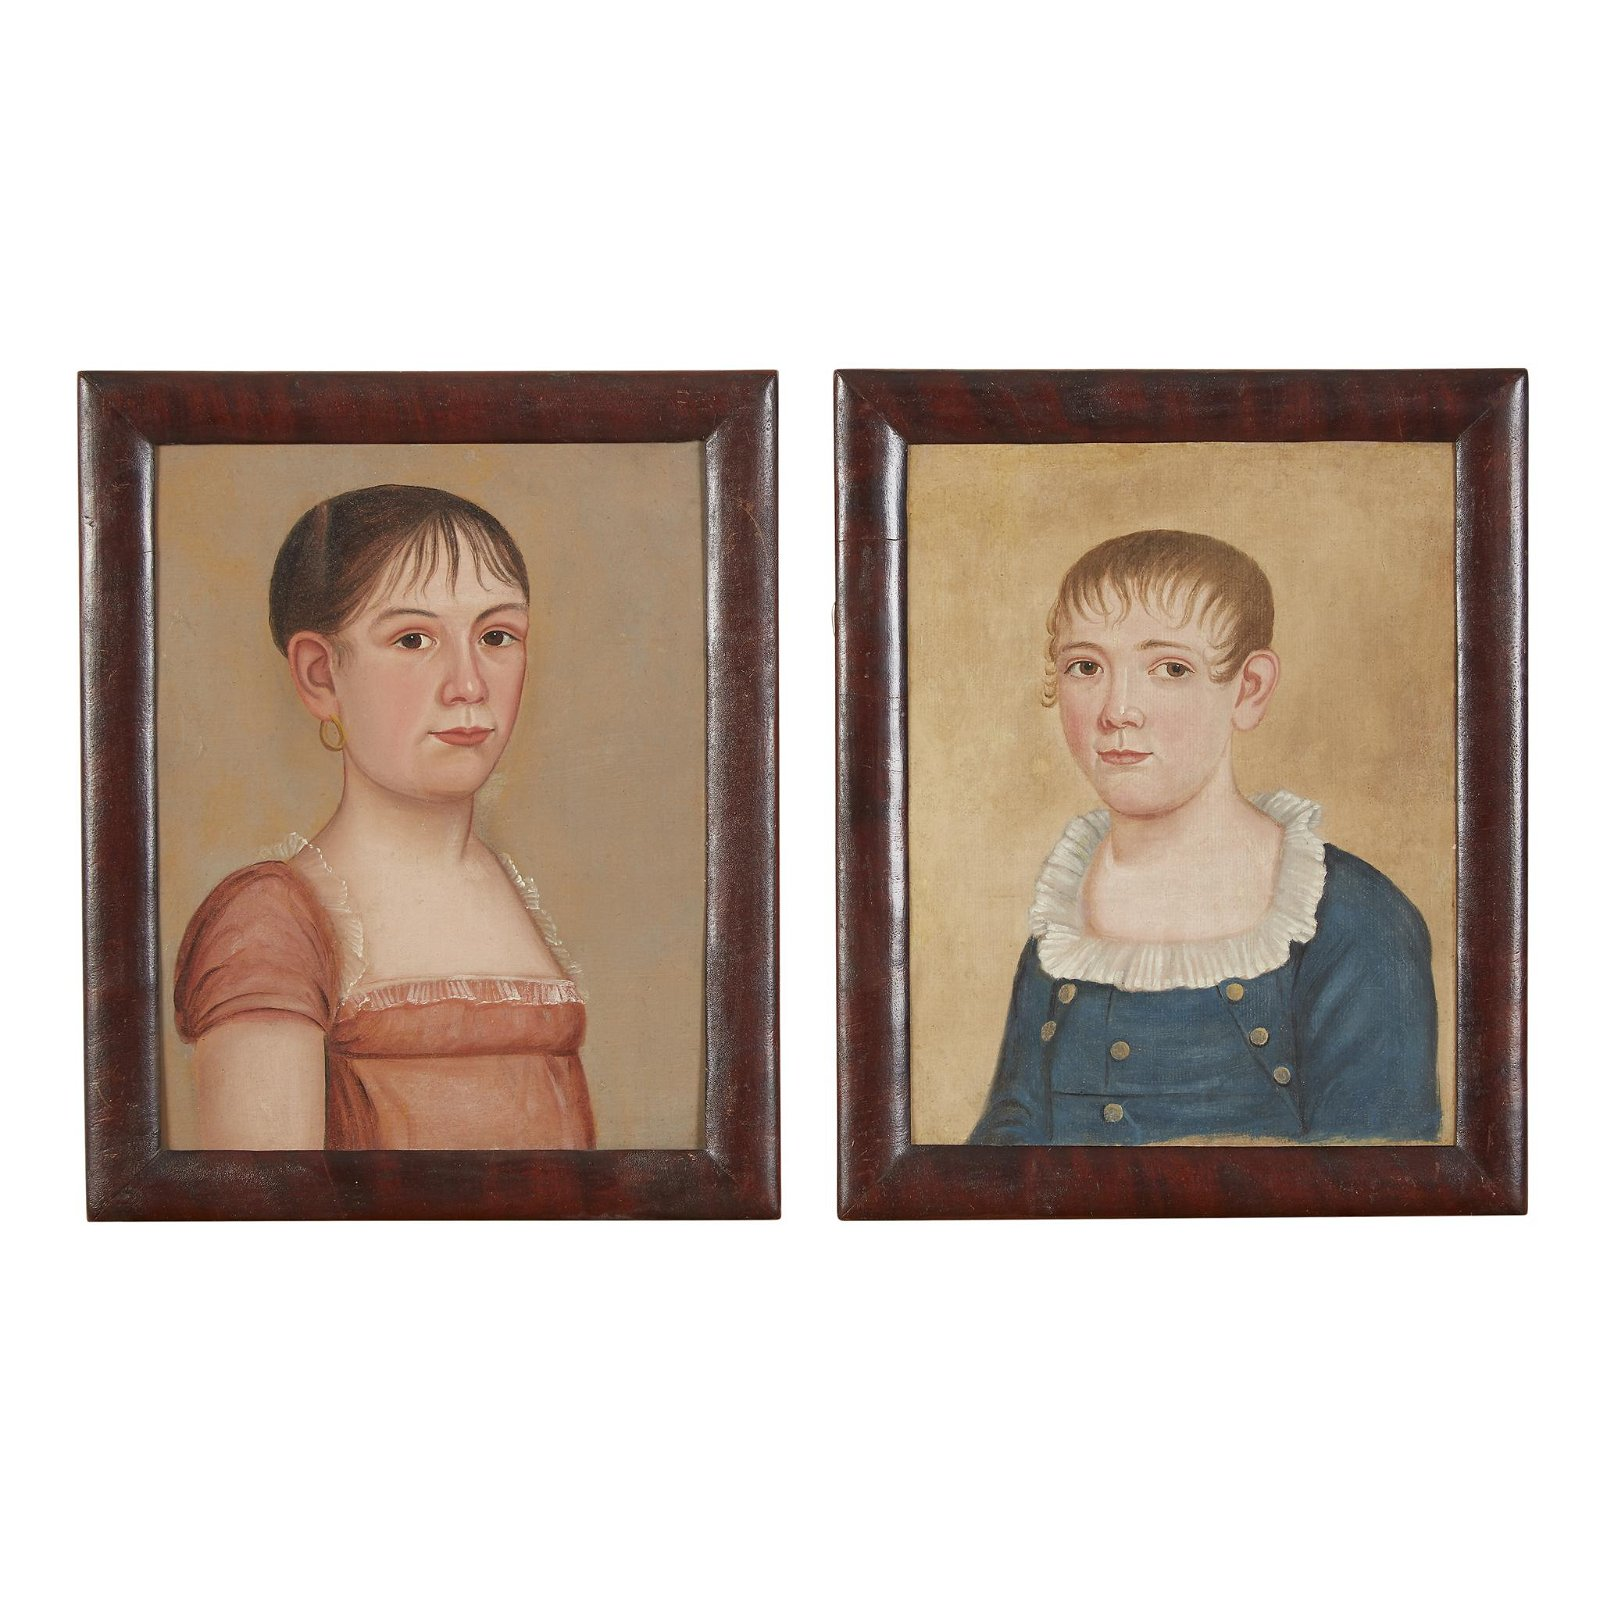 The Burpee-Conant Limner, Pair of portraits: young girl